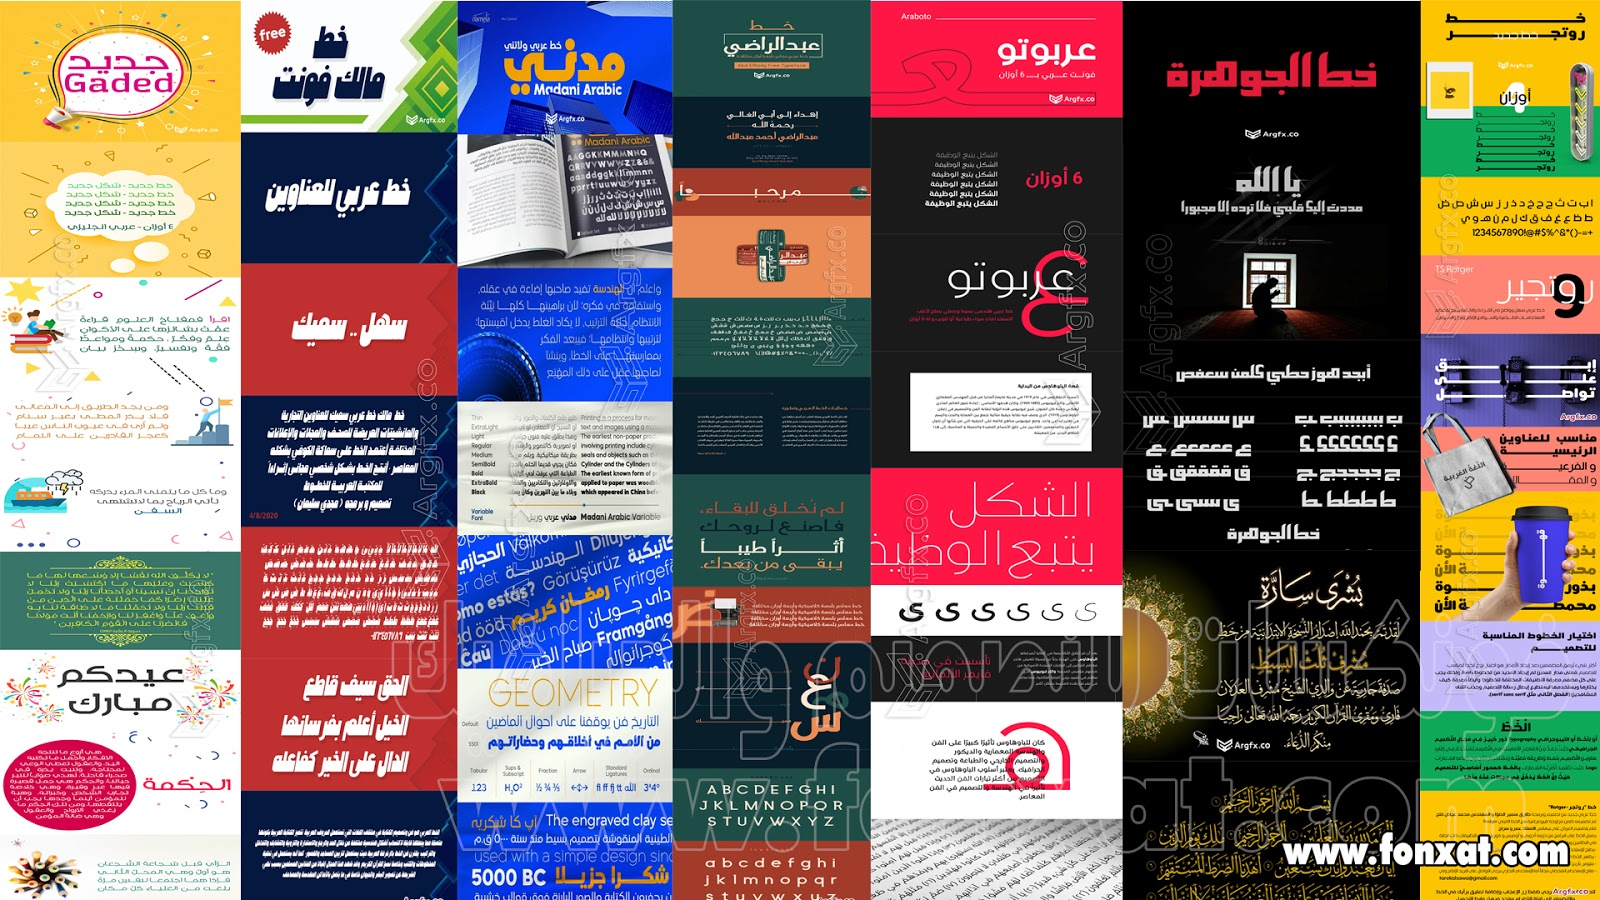 Arabic Professional Fonts Group No. 1 is more than wonderful